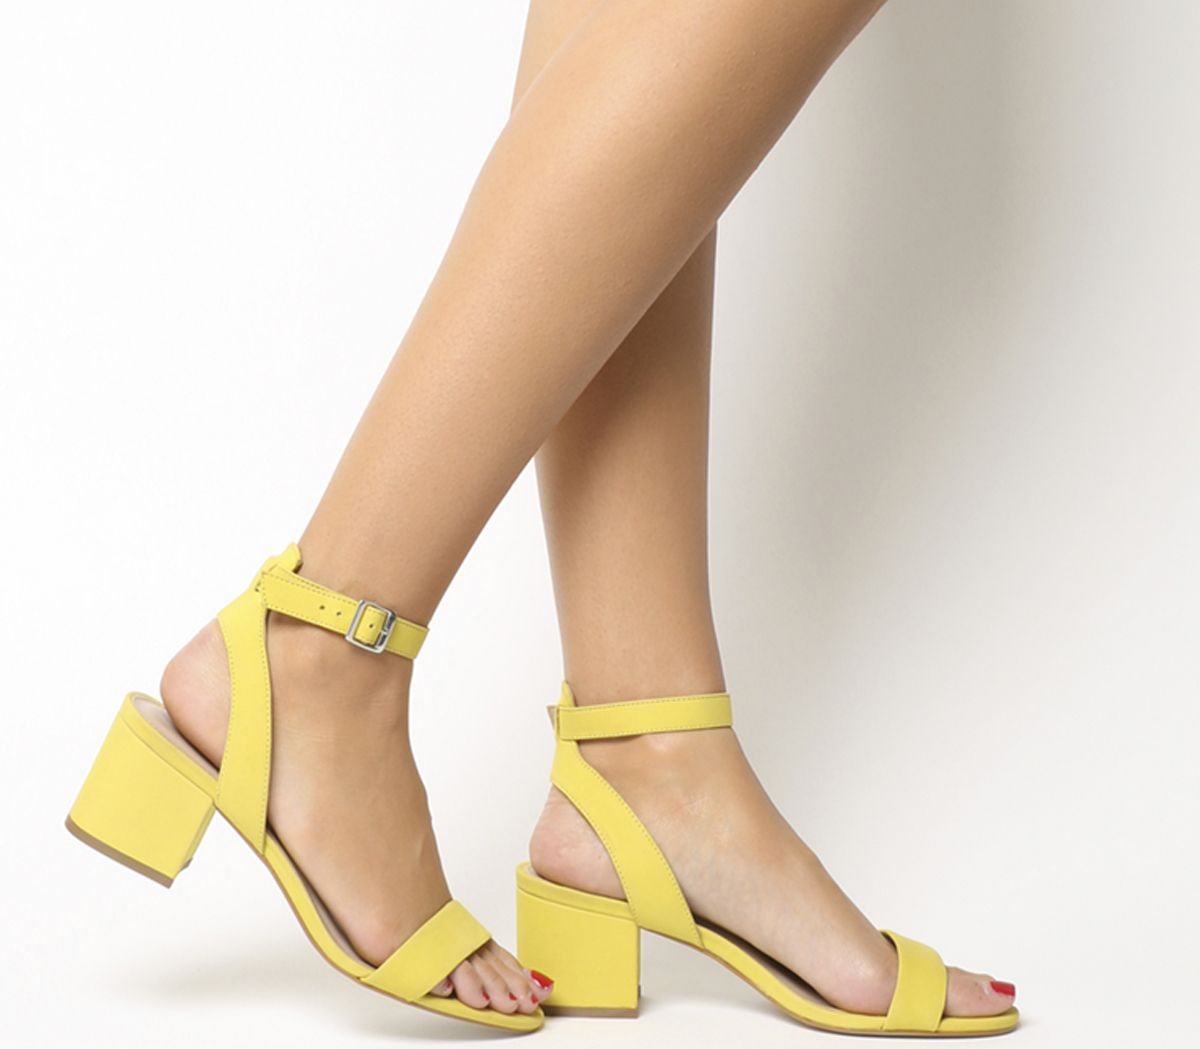 99ce3d979c8 Office Make Up Sandals Yellow Nubuck - Mid Heels